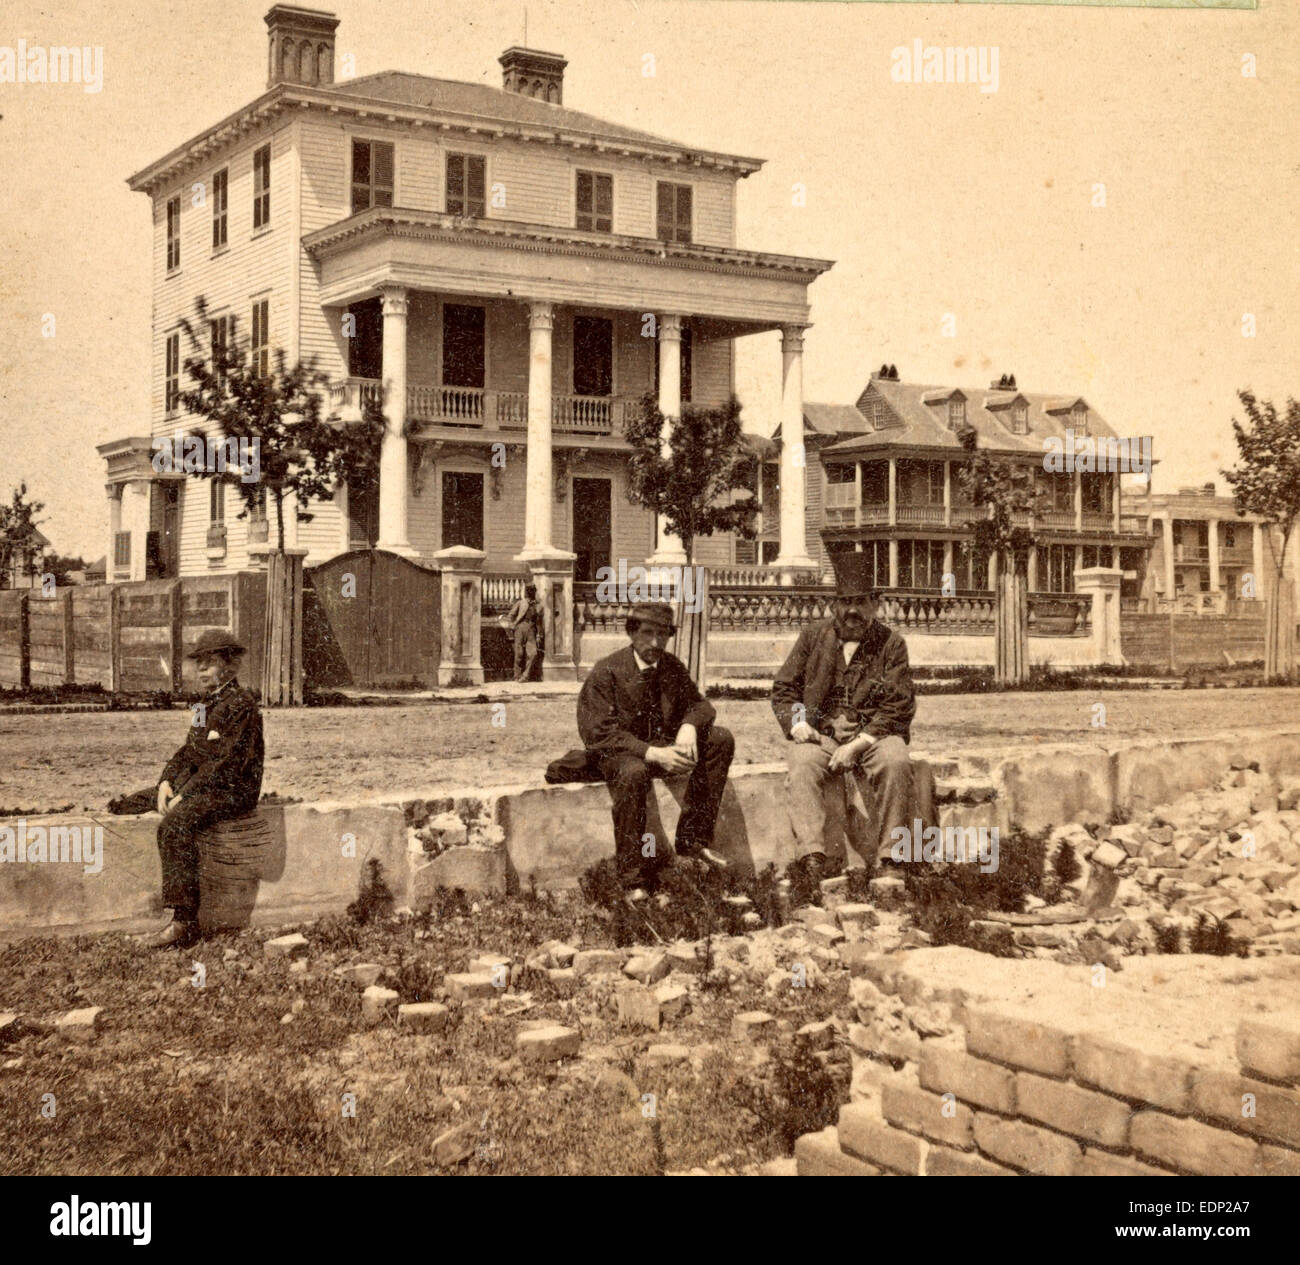 House where the Union officers were confined under fire, Broad St., Charleston, S.C., USA, US, Vintage photography - Stock Image